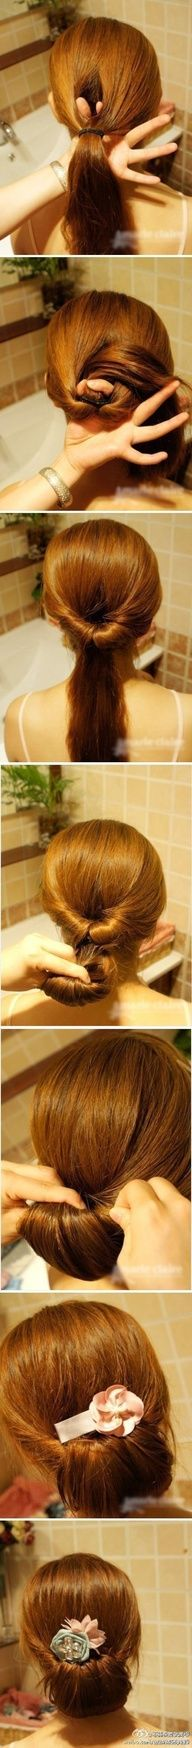 braid is popular for a girl going to date